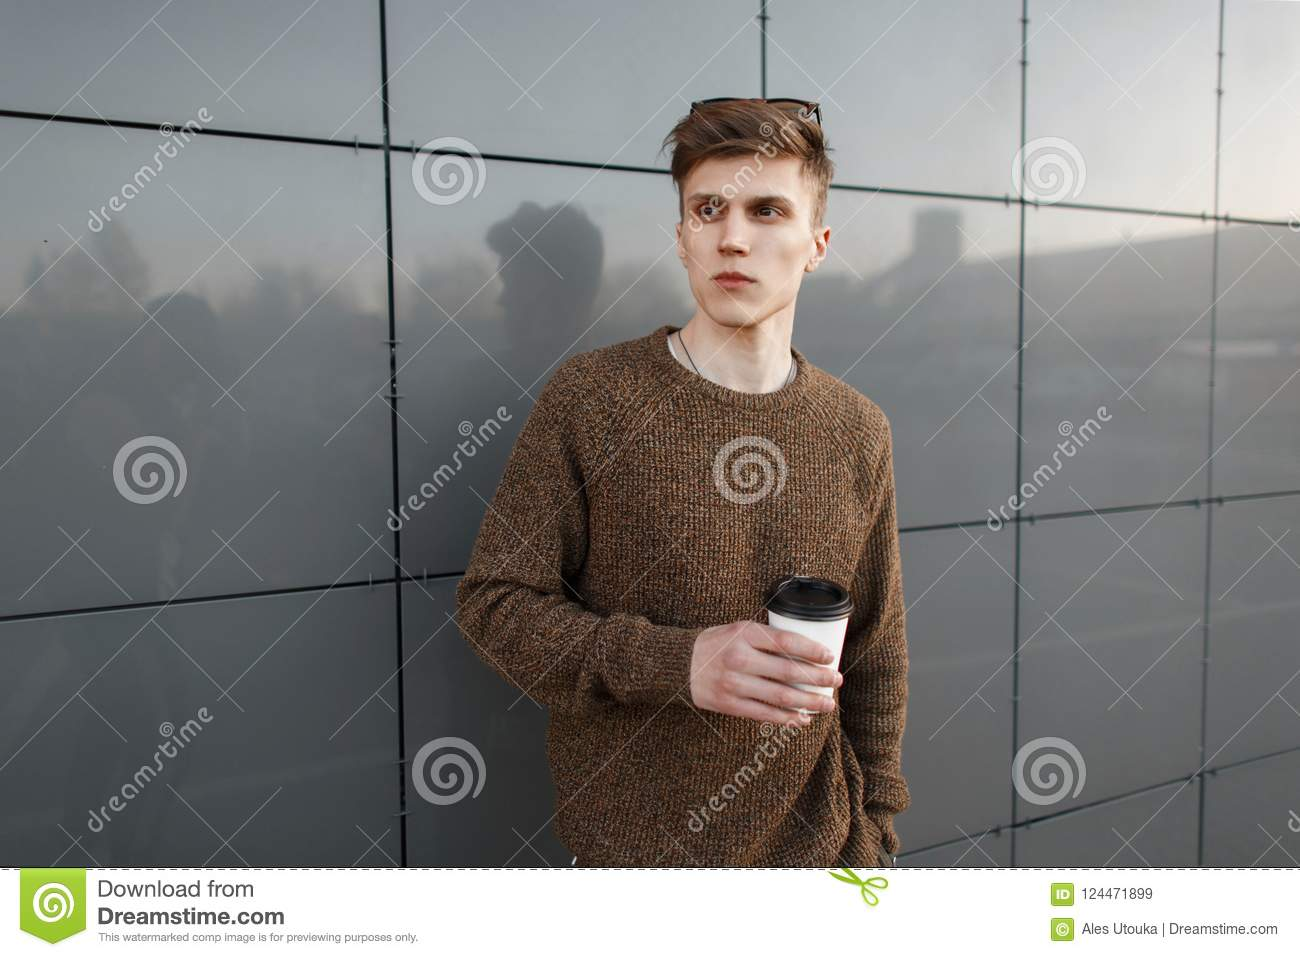 3e94635dbc4 Handsome young stylish man with a hairstyle in a fashion pullover holding a  cup of coffee on the street